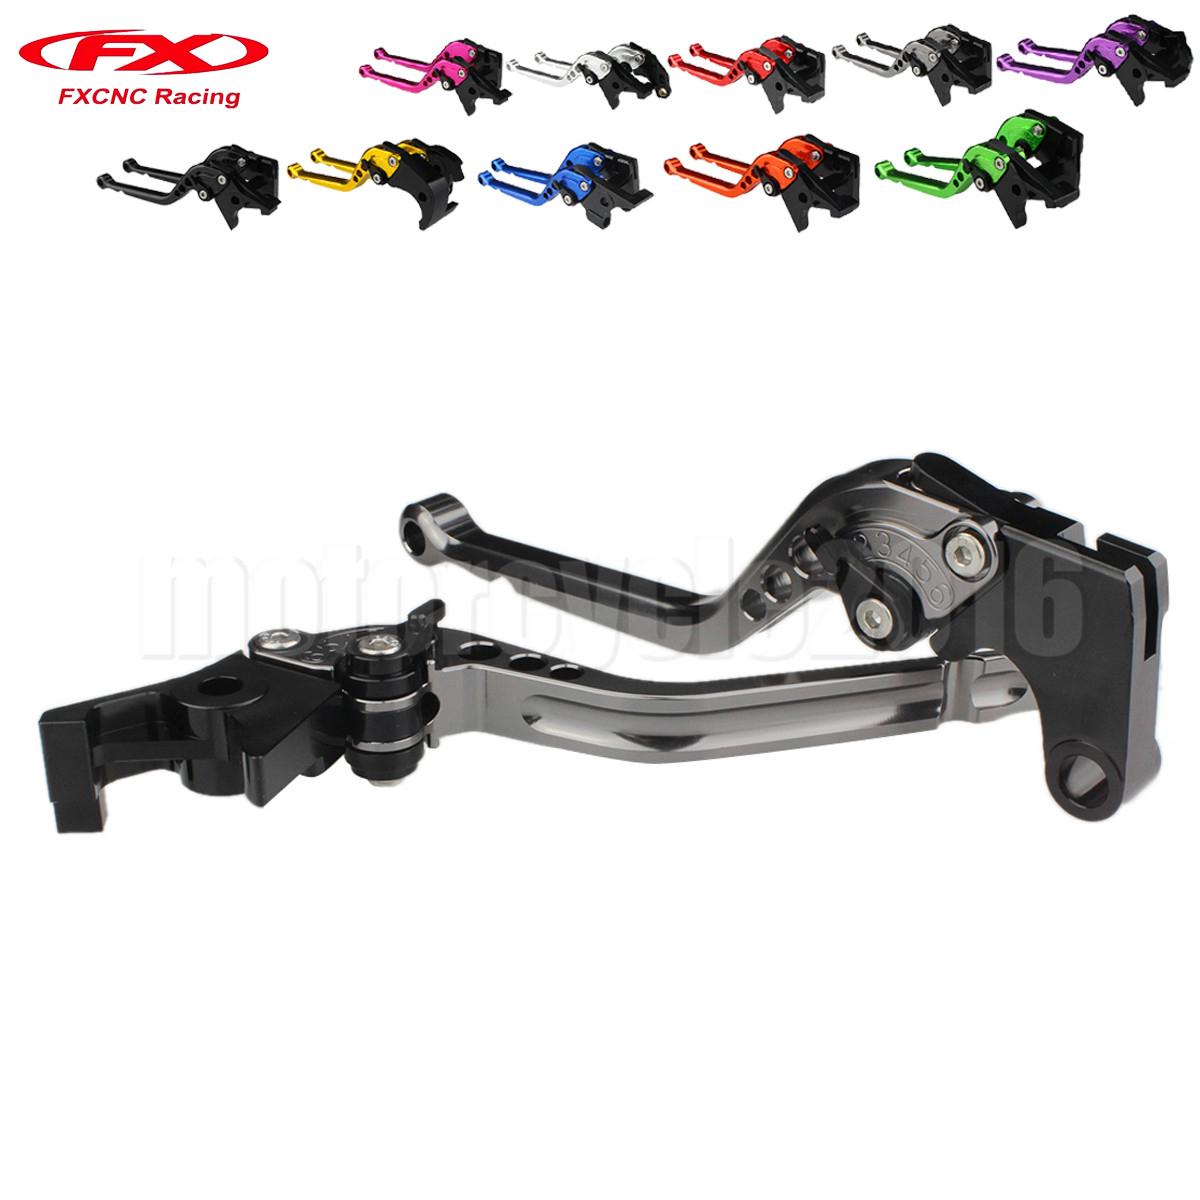 FXCNC Aluminum Adjustable Motorcycle Brake Clutch Lever For Yamaha XJ6 DIVERSION 2009-2015 10 11 12 13 FZ6 FAZER 2004-2010 05 06